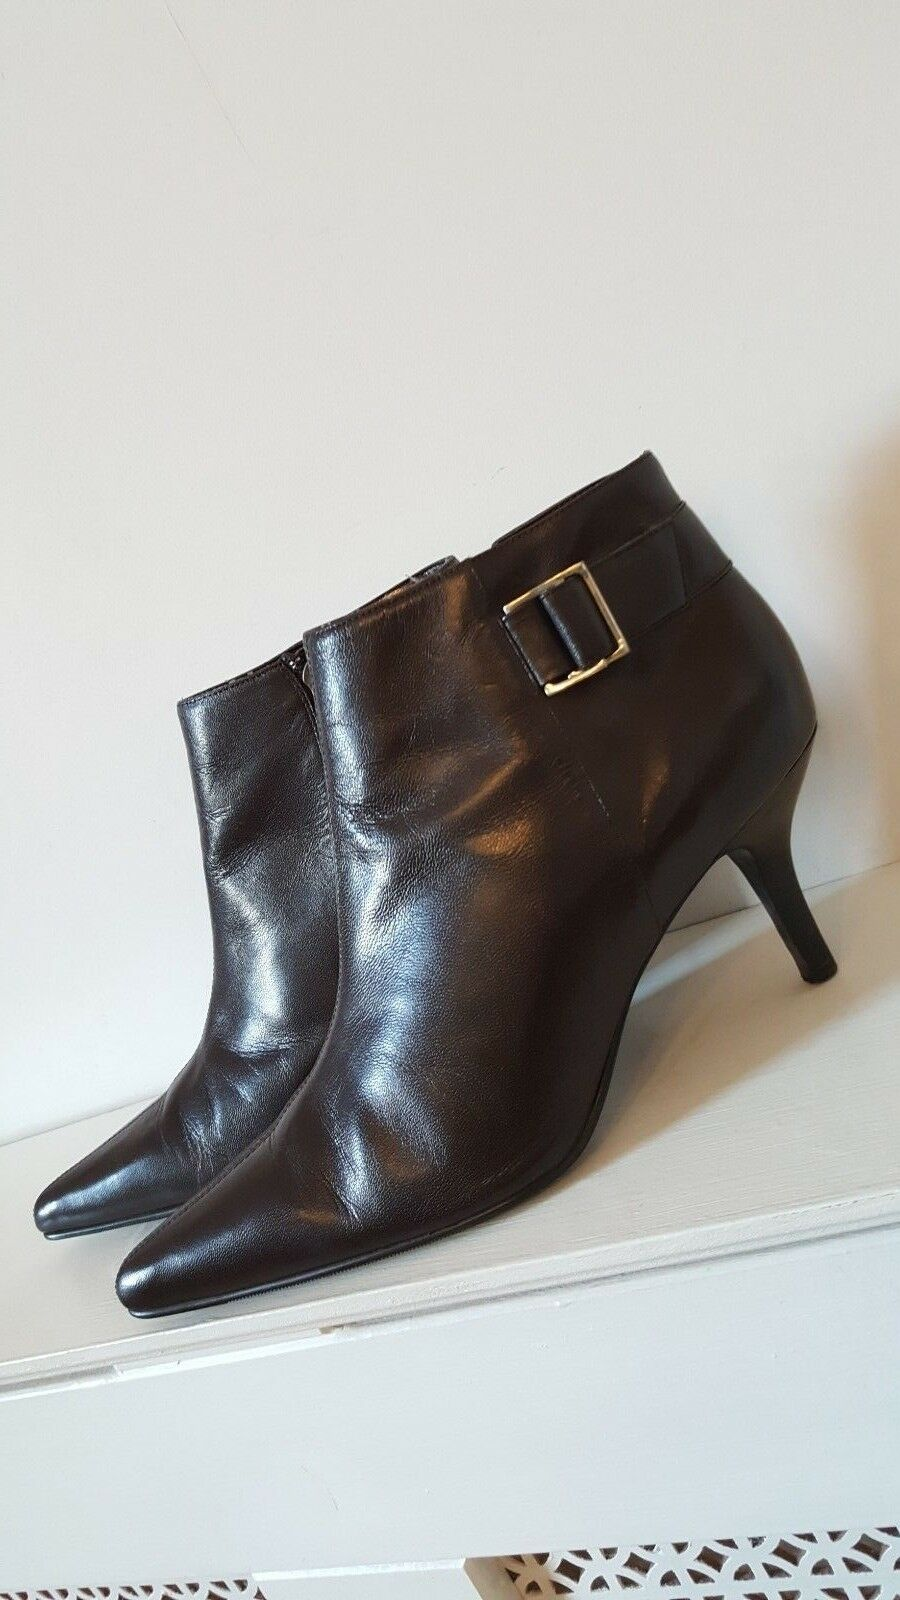 M&S Dark Brown Leather Goth Vamp Pointy Toe Ankle Boots Size 41.5 UK 7